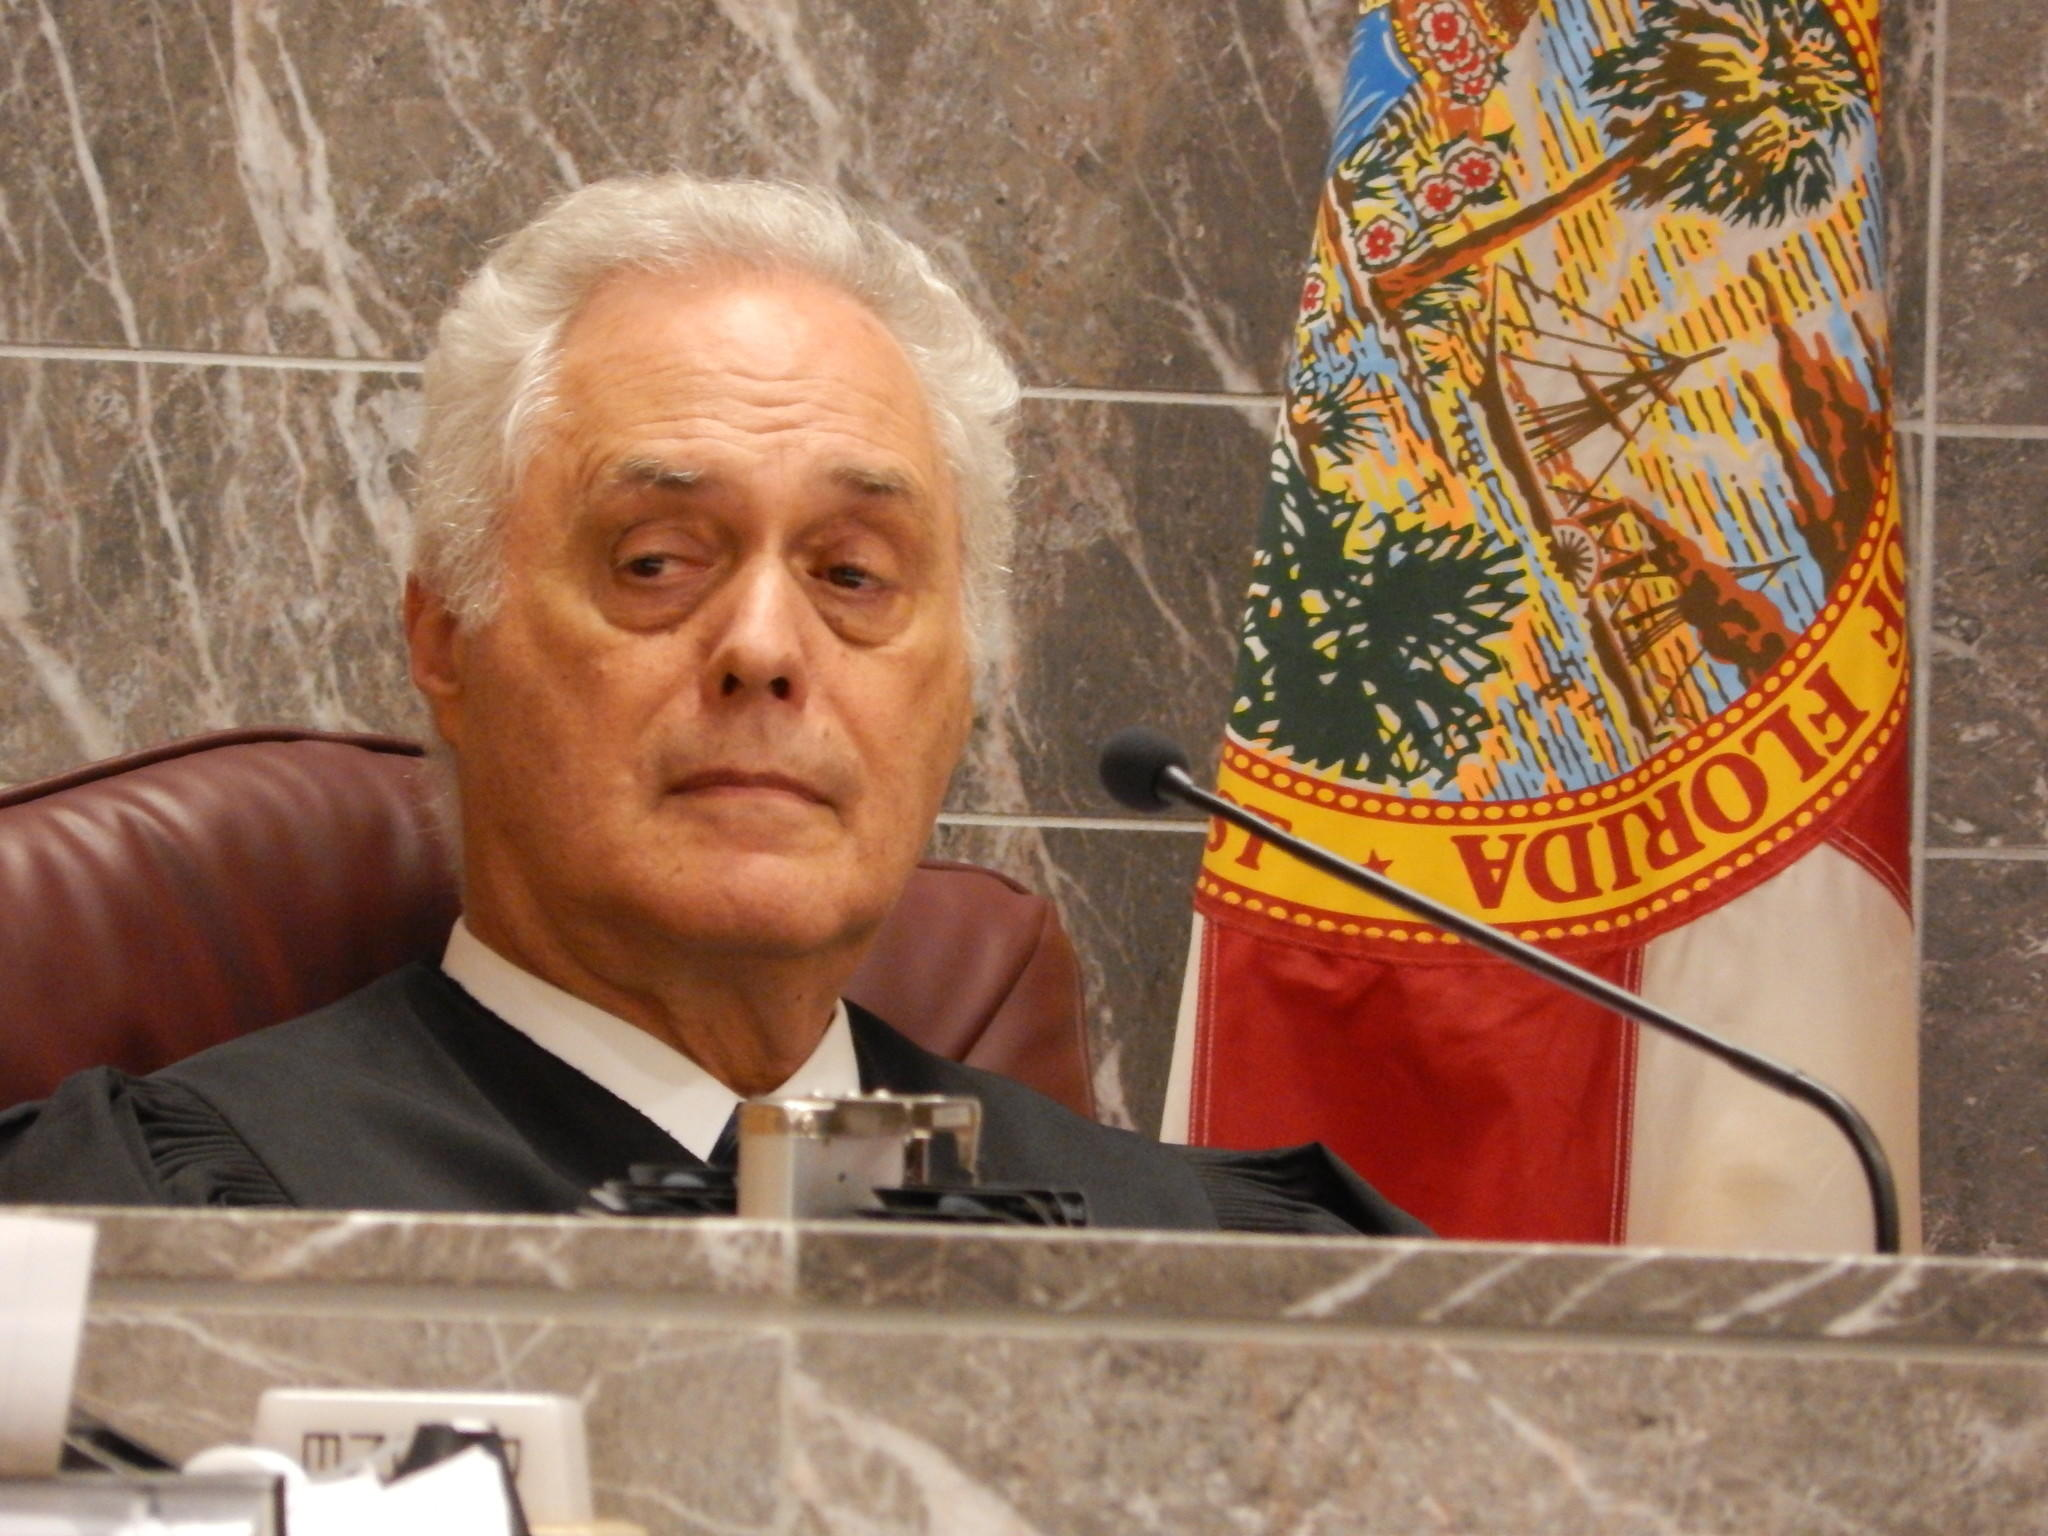 Unexpected developments in the trial of former Deerfield Beach Mayor Al Capellini led Broward Circuit Judge Marc Gold to question when -- and whether -- the trial will ever end.